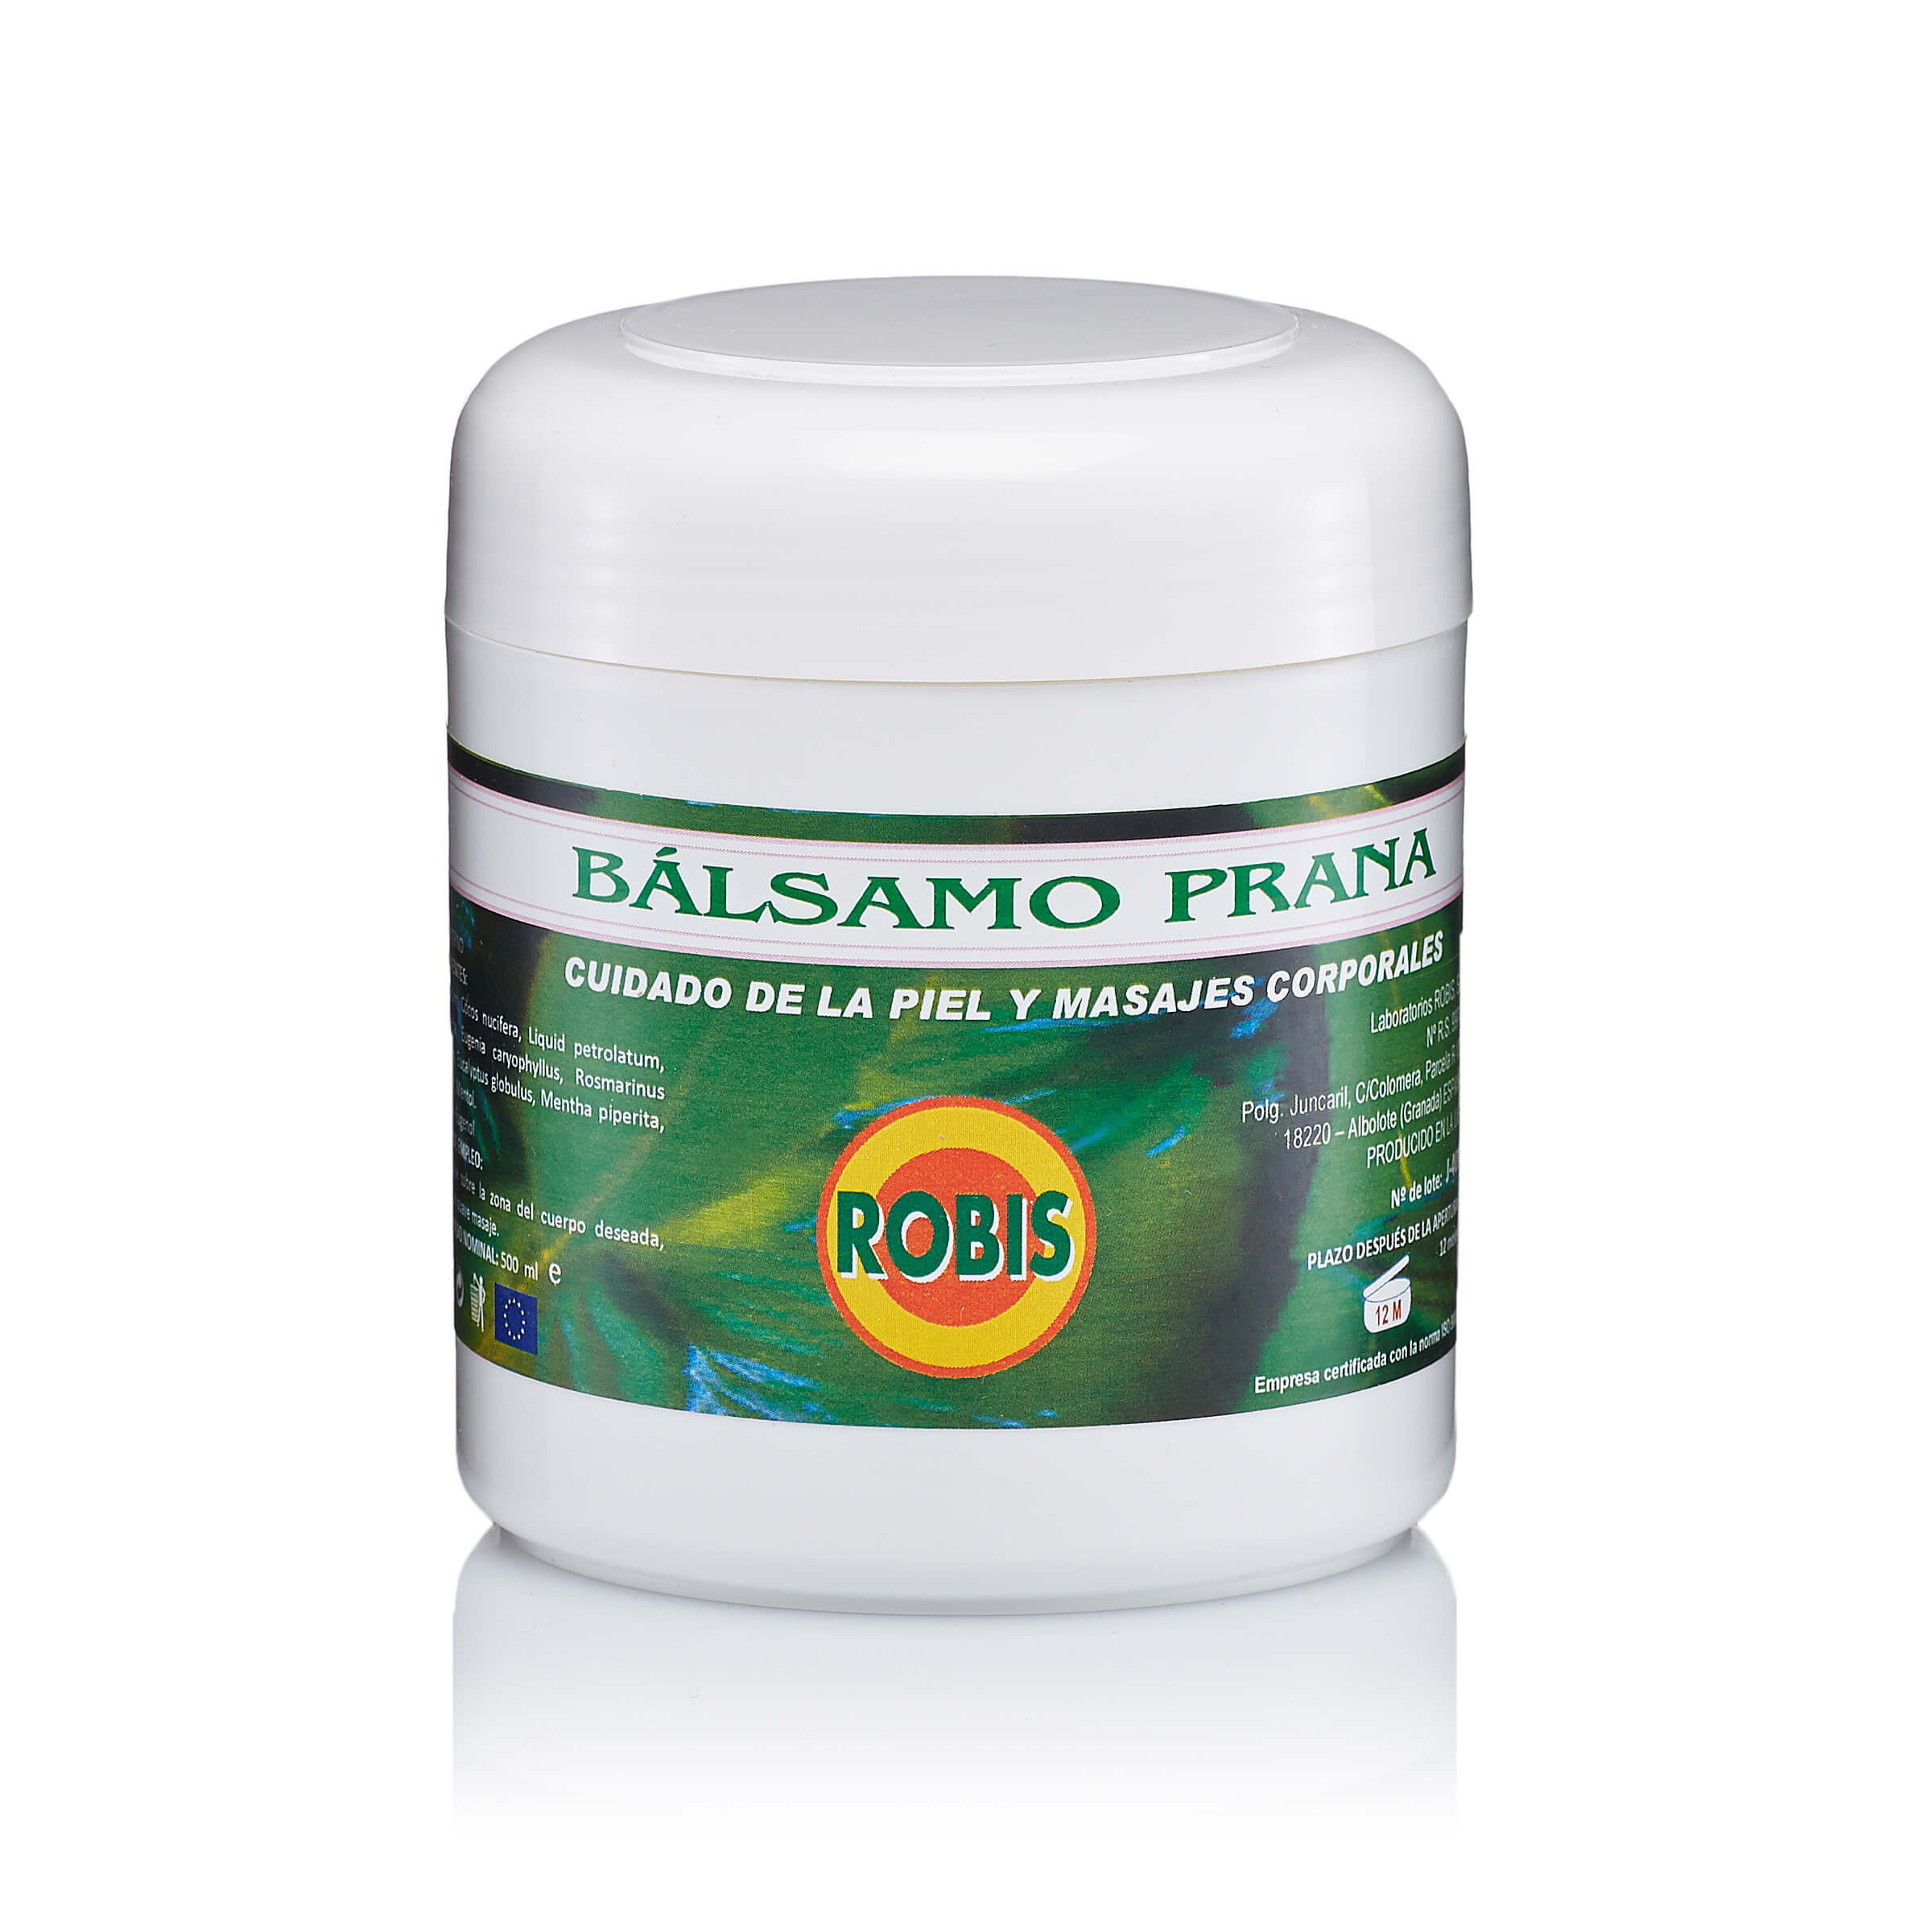 Food supplement of solid petrolatum, coconut oil, liquid petrolatum, beeswax, clove oil, rosemary oil, eucalyptus oil, peppermint oil, camphor and menthol. Muscles and joints flexible, eases the airways